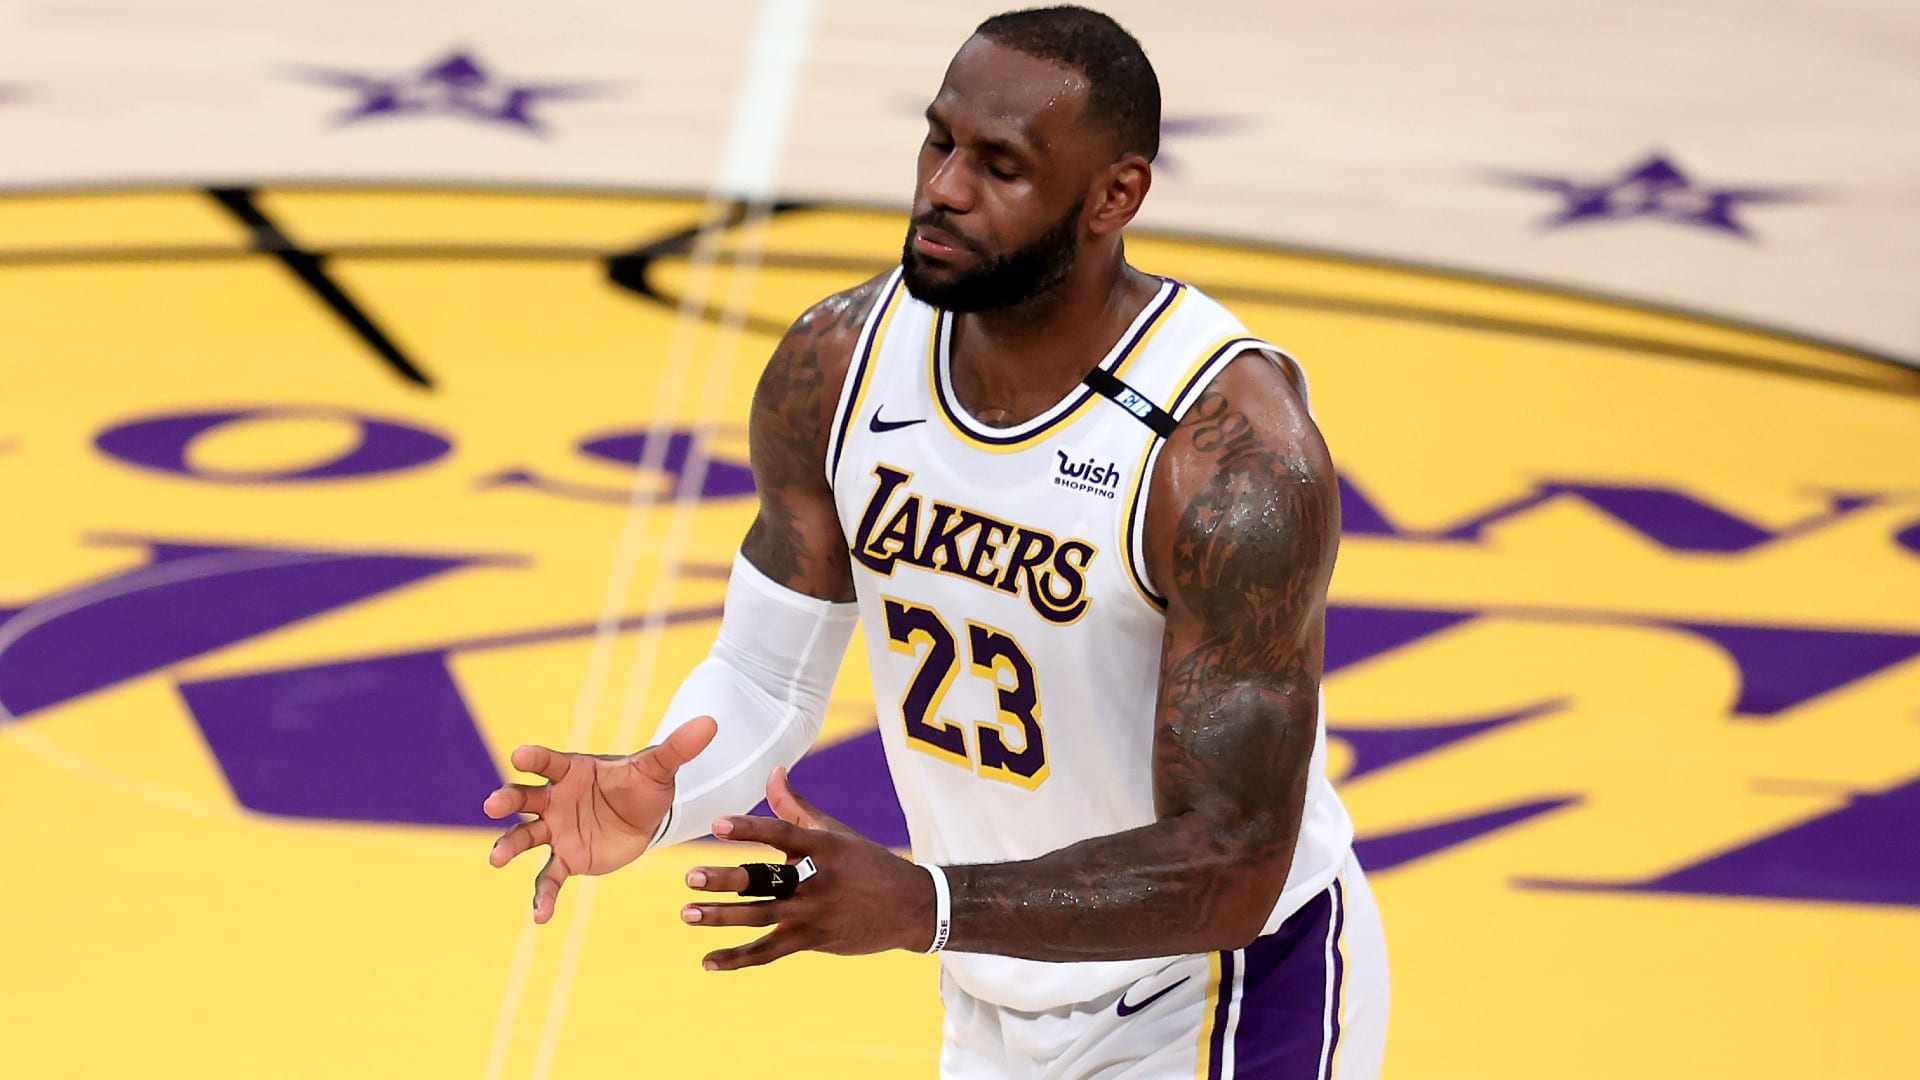 lebron-james-ready-for-the-subject-of-changing-anthony-davis-if-rupture-leaves-lakers-shorthanded.jpg